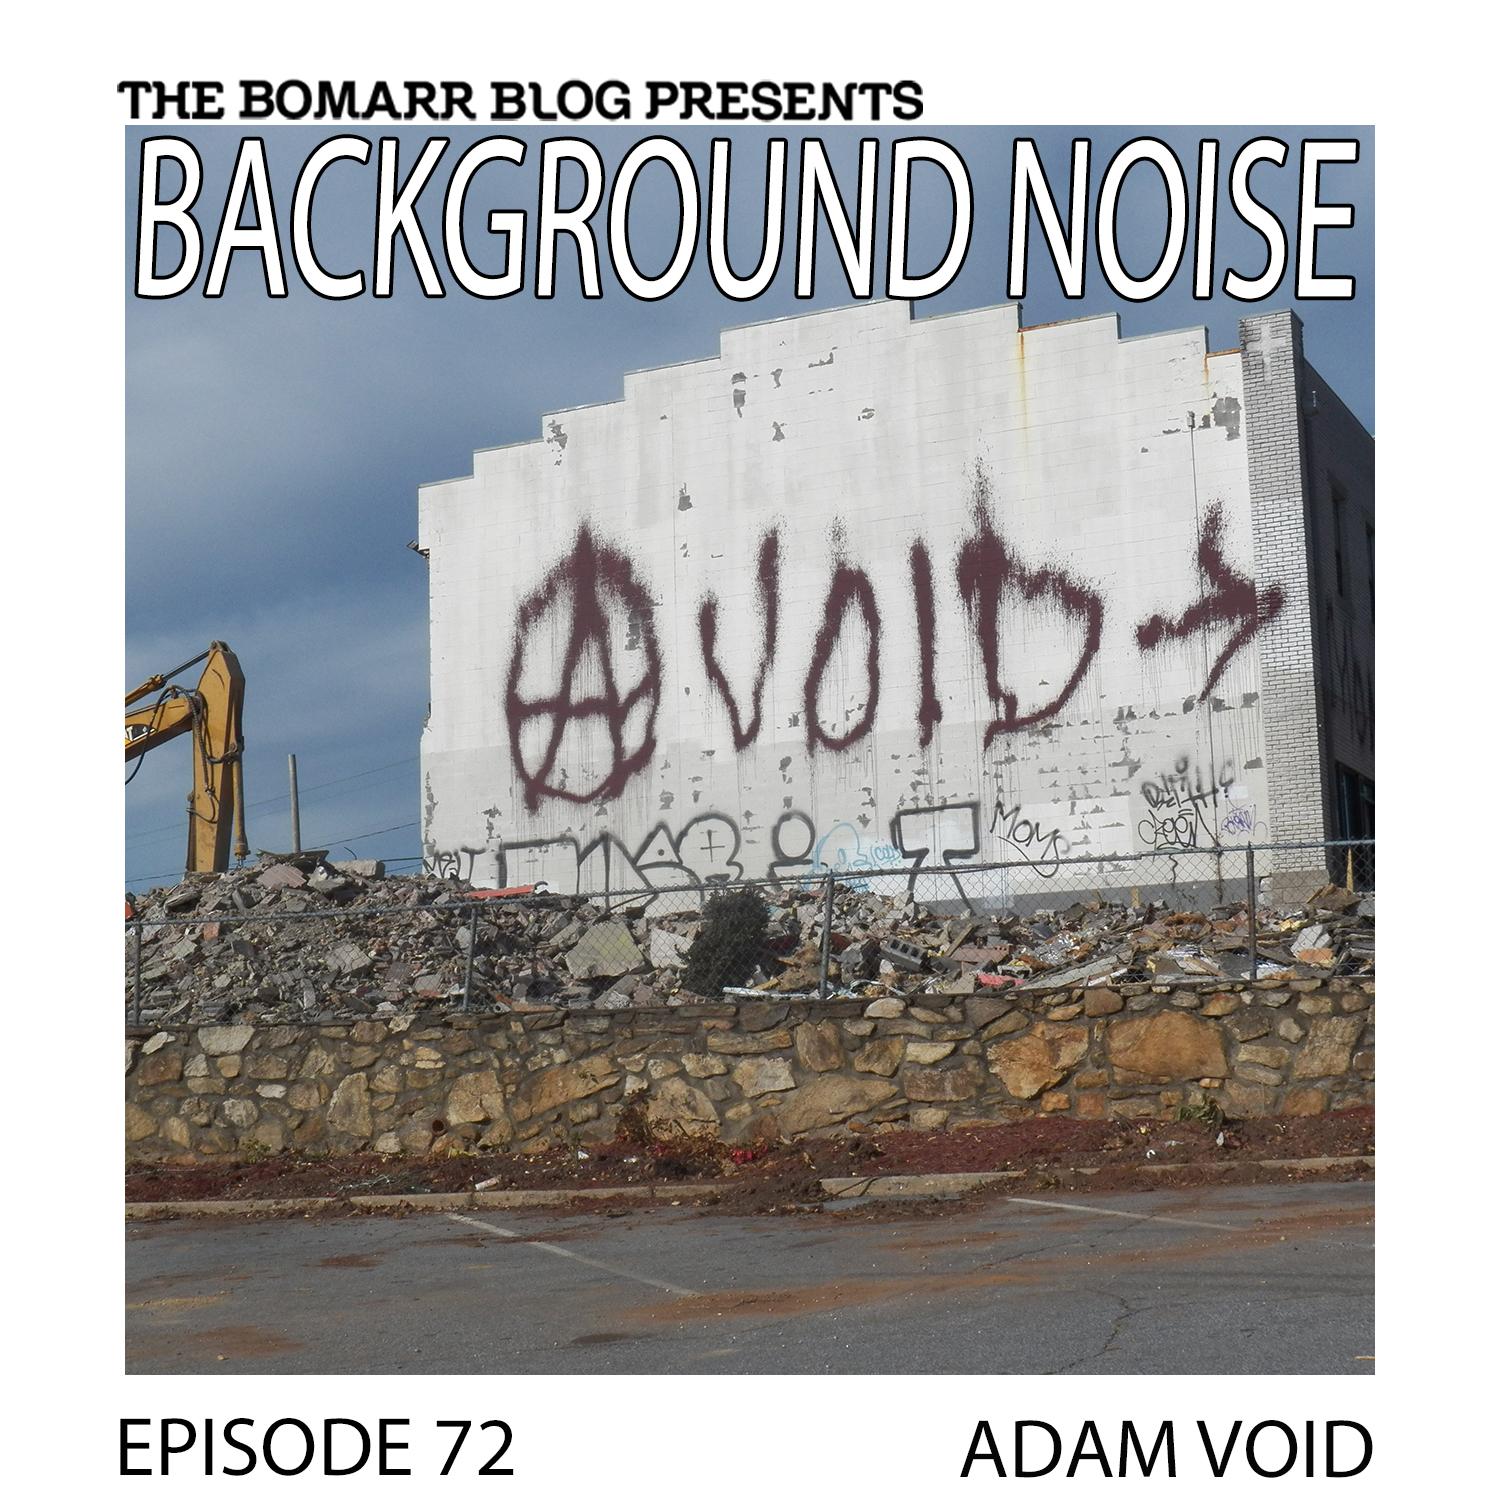 THE BACKGROUND NOISE PODCAST SERIES FOCUSES ON THE MUSIC THAT ARTISTS LISTEN TO WHEN THEY WORK, WHAT MUSIC INSPIRES THEM, OR JUST MUSIC THEY LIKE. THIS WEEK, IN EPISODE 72, THE FOCUS IS ON ADAM VOID